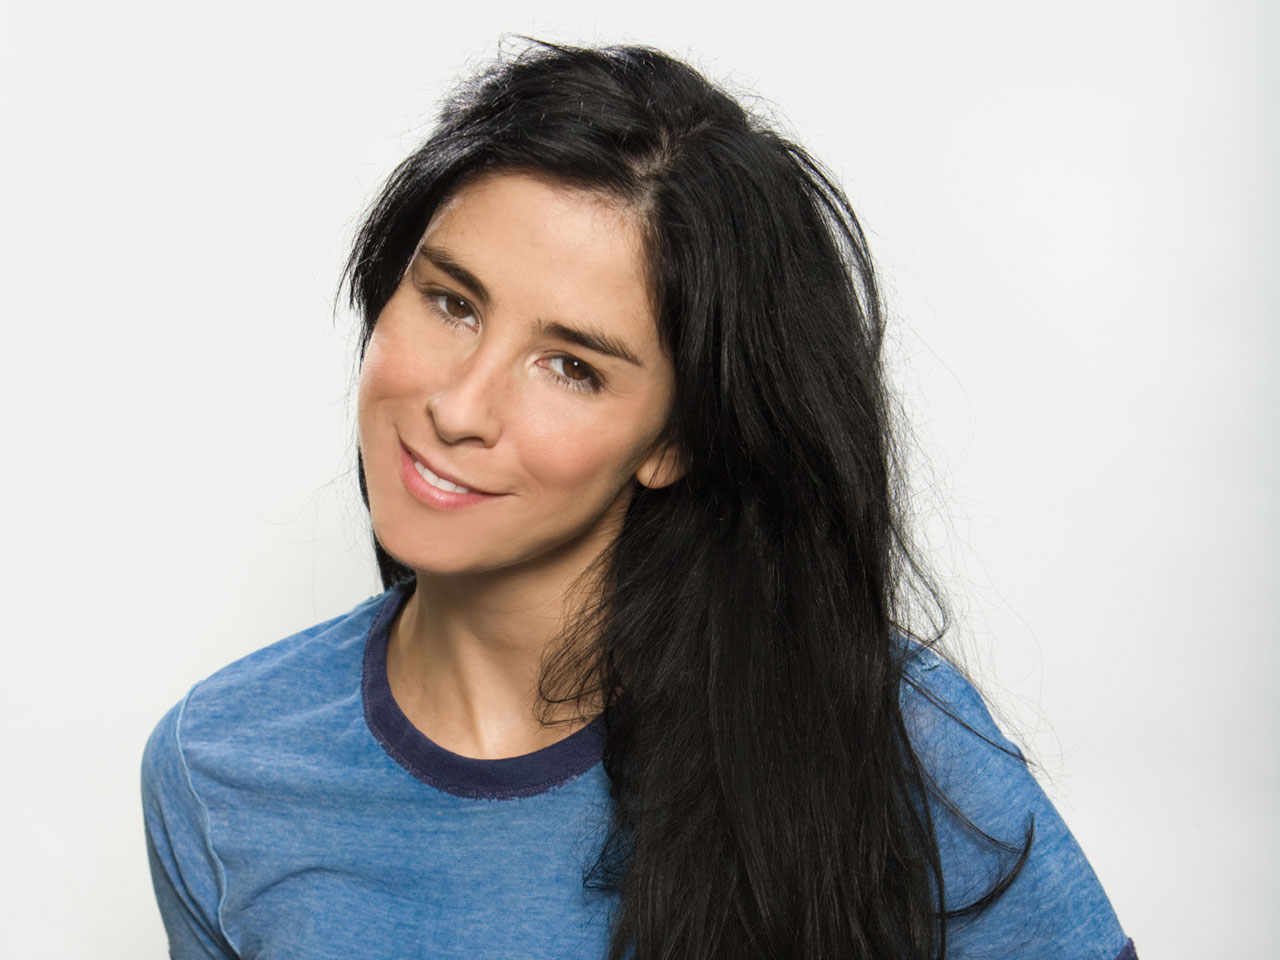 HBO took another step today in putting themselves back at the front of the televised comedy special scene, announcing Sarah Silverman will star in her first ...